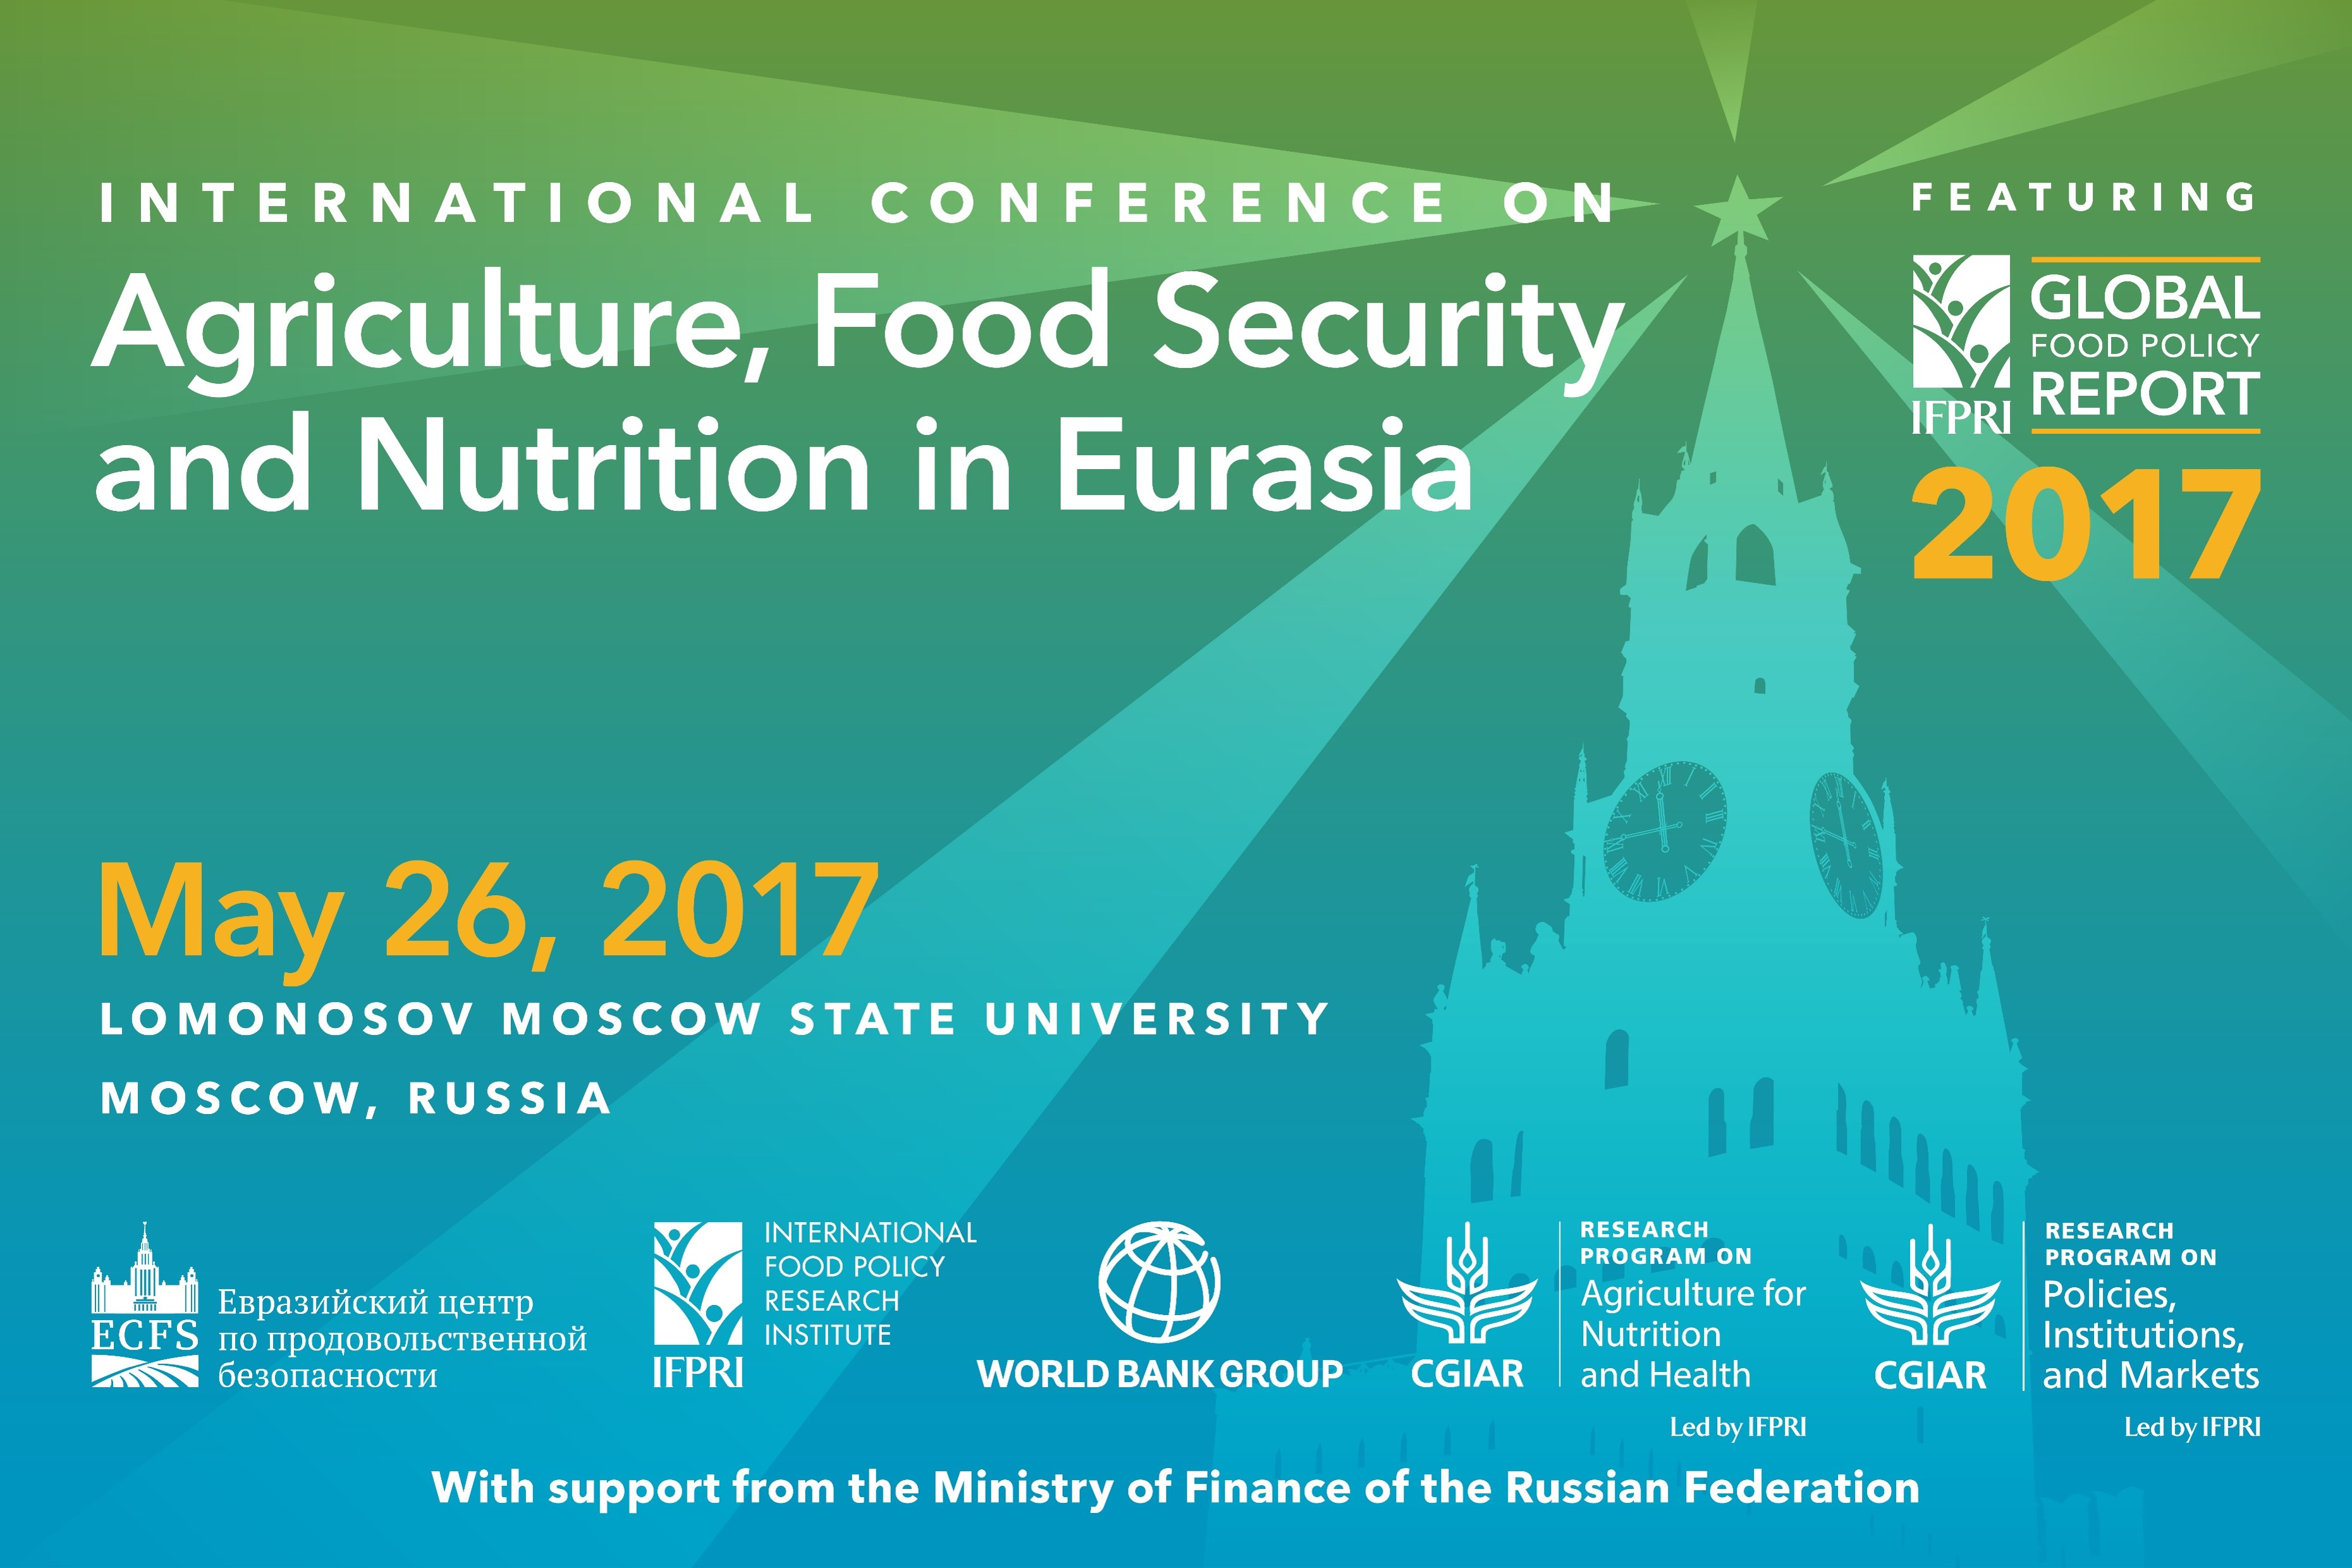 International Conference on Agriculture, Food Security, and Nutrition in Eurasia and Moscow launch of the 2017 Global Food Policy Report